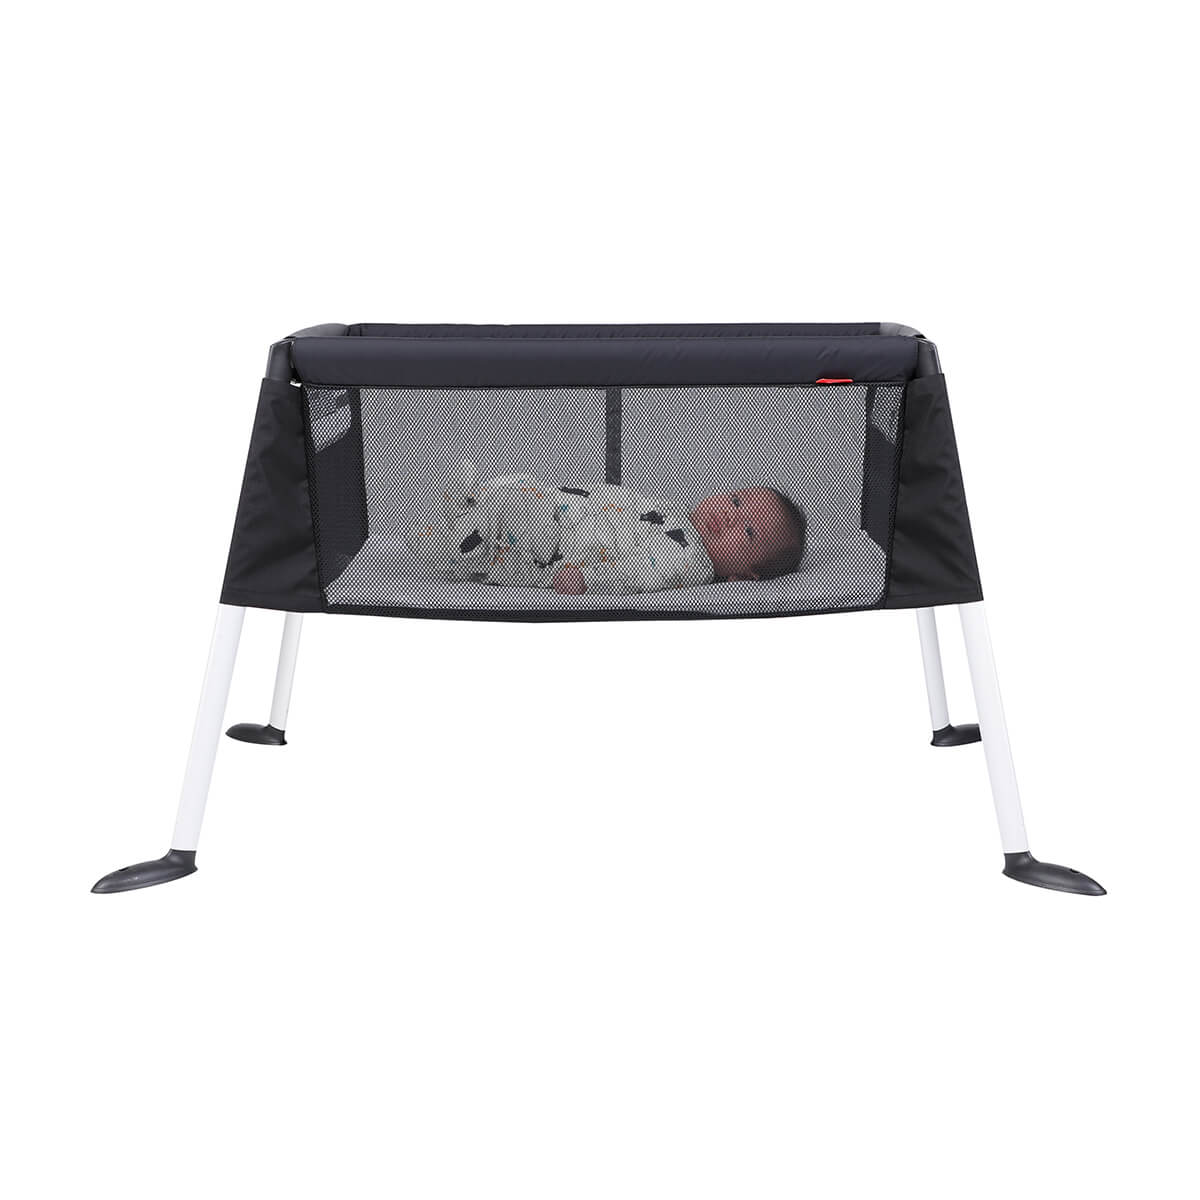 Phil and teds traveller bassinet side baby 1200 x 1200 - Lit de voyage traveller phil and teds ...